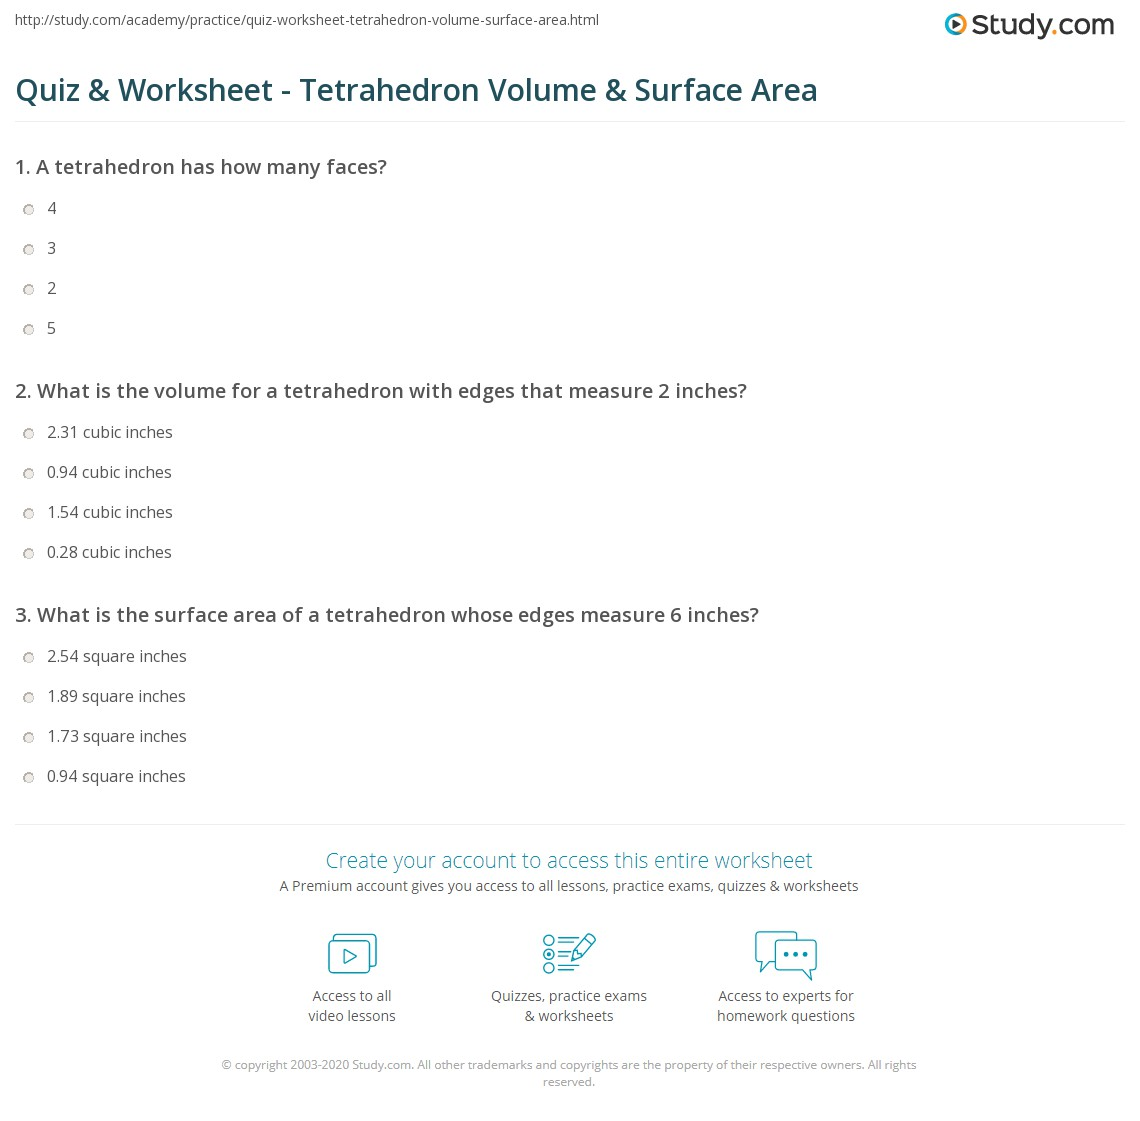 Worksheets For Volume in addition Free worksheets for the volume and surface area of cubes in addition Volume And Surface Area Worksheet Worksheets for all   Download and further Geometry Surface Area And Volume Worksheets Worksheets for all likewise Surface Area And Volume Of  posite Figures Worksheet Pdf Answers likewise Geometry Worksheets   Surface Area   Volume Worksheets together with Free Worksheets Liry   Download and Print Worksheets   Free on in addition Surface Area and Volume Revision     JustMaths besides Volume and Surface Area of Cuboids Exercise by ryansmailes likewise Geometry Worksheets   Surface Area   Volume Worksheets in addition surface area worksheets grade 7 – shopskipt likewise Volume   Surface Area besides Free Worksheets Liry   Download and Print Worksheets   Free on as well  moreover Quiz   Worksheet   Tetrahedron Volume   Surface Area   Study in addition Surface Area And Volume Of Cylinders A Rectangular Prism. on volume and surface area worksheets